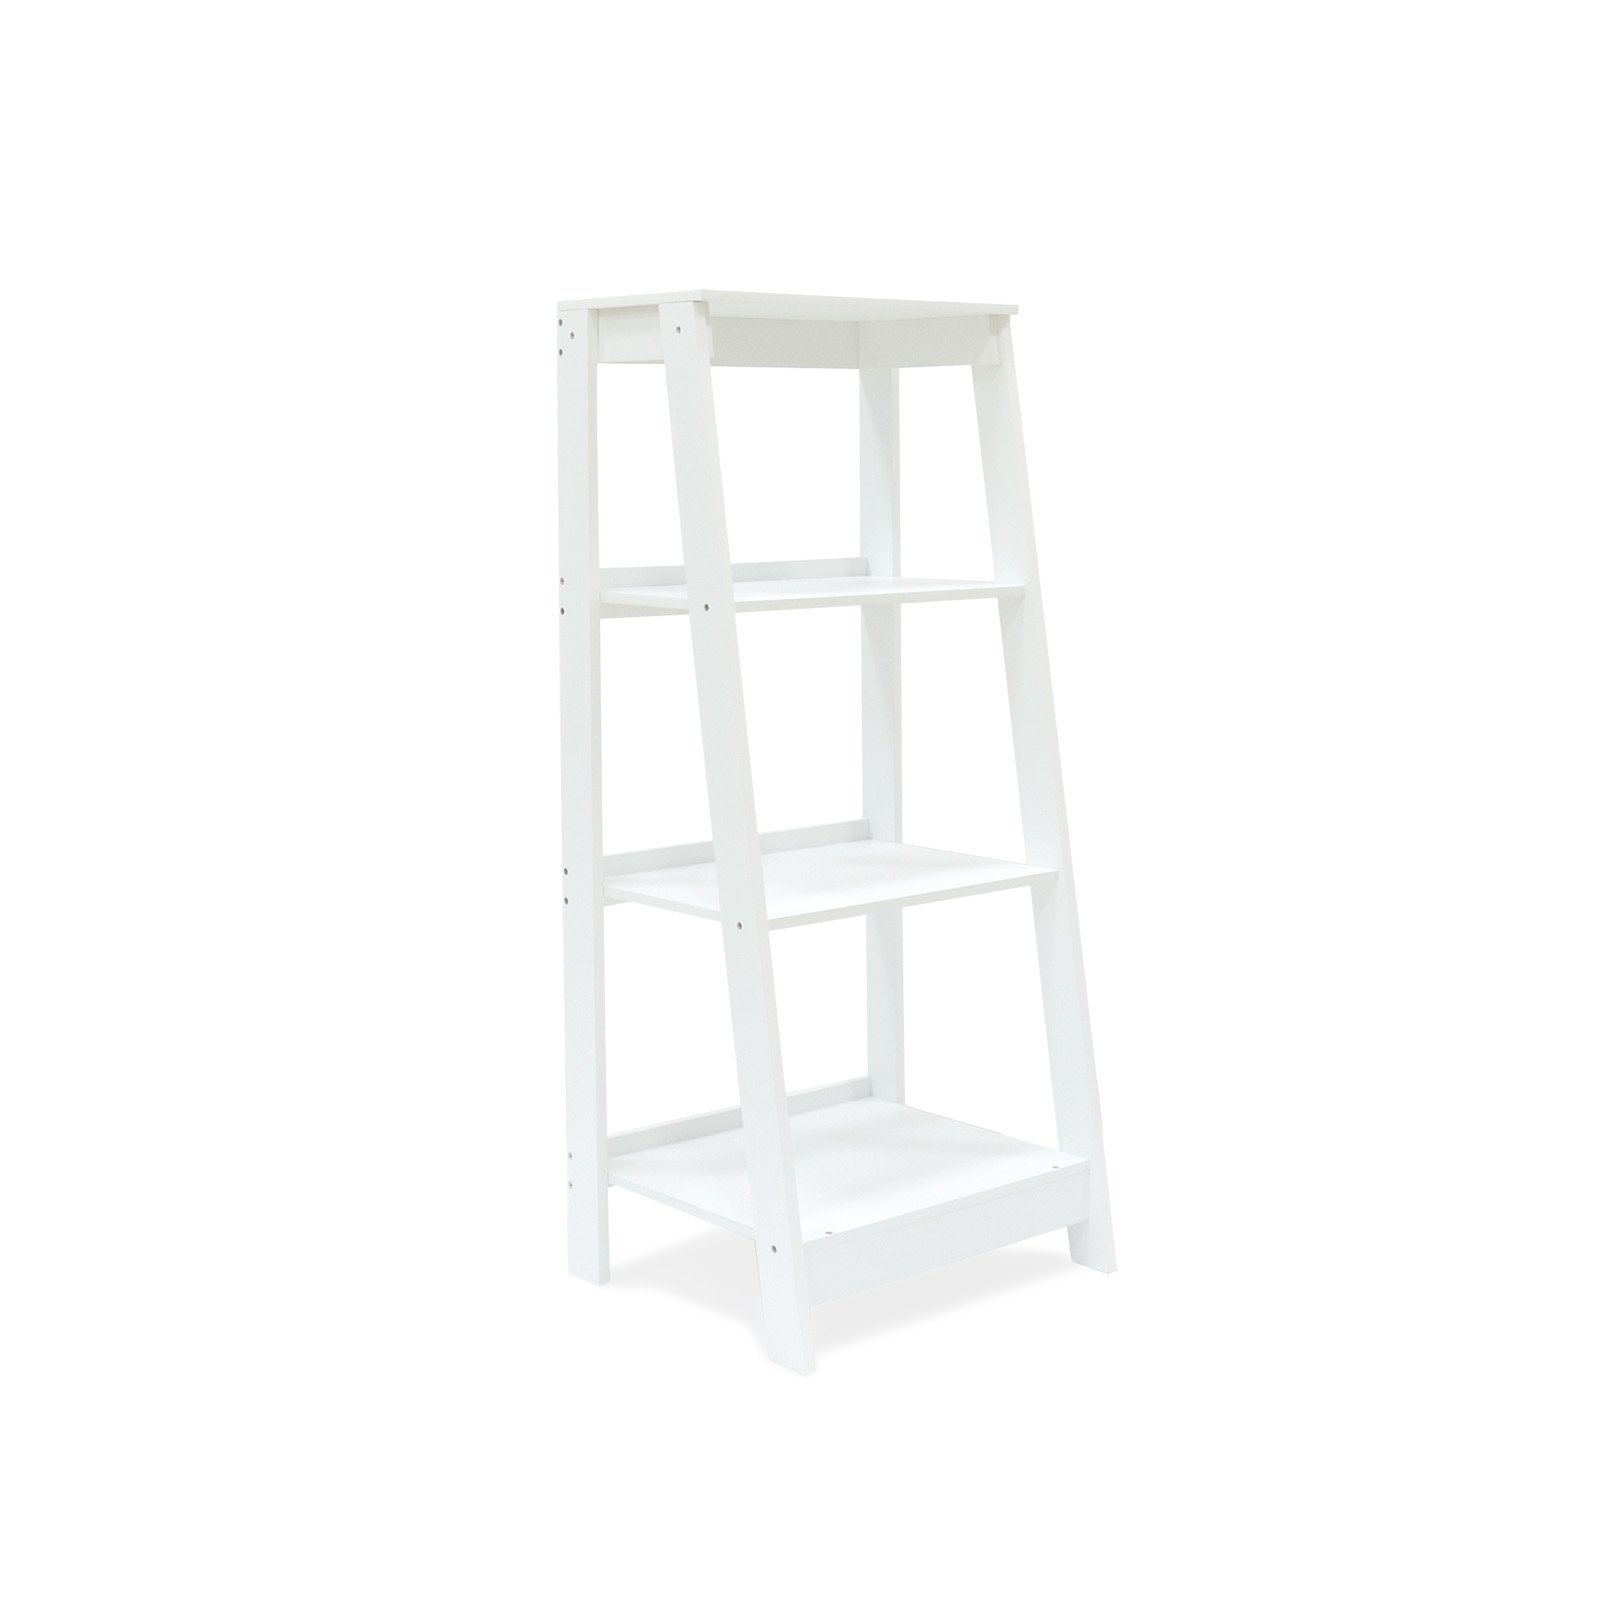 Coismo 3-Tier Ladder Functional Shelf Wooden Home Office Storage Bookcase Display, White